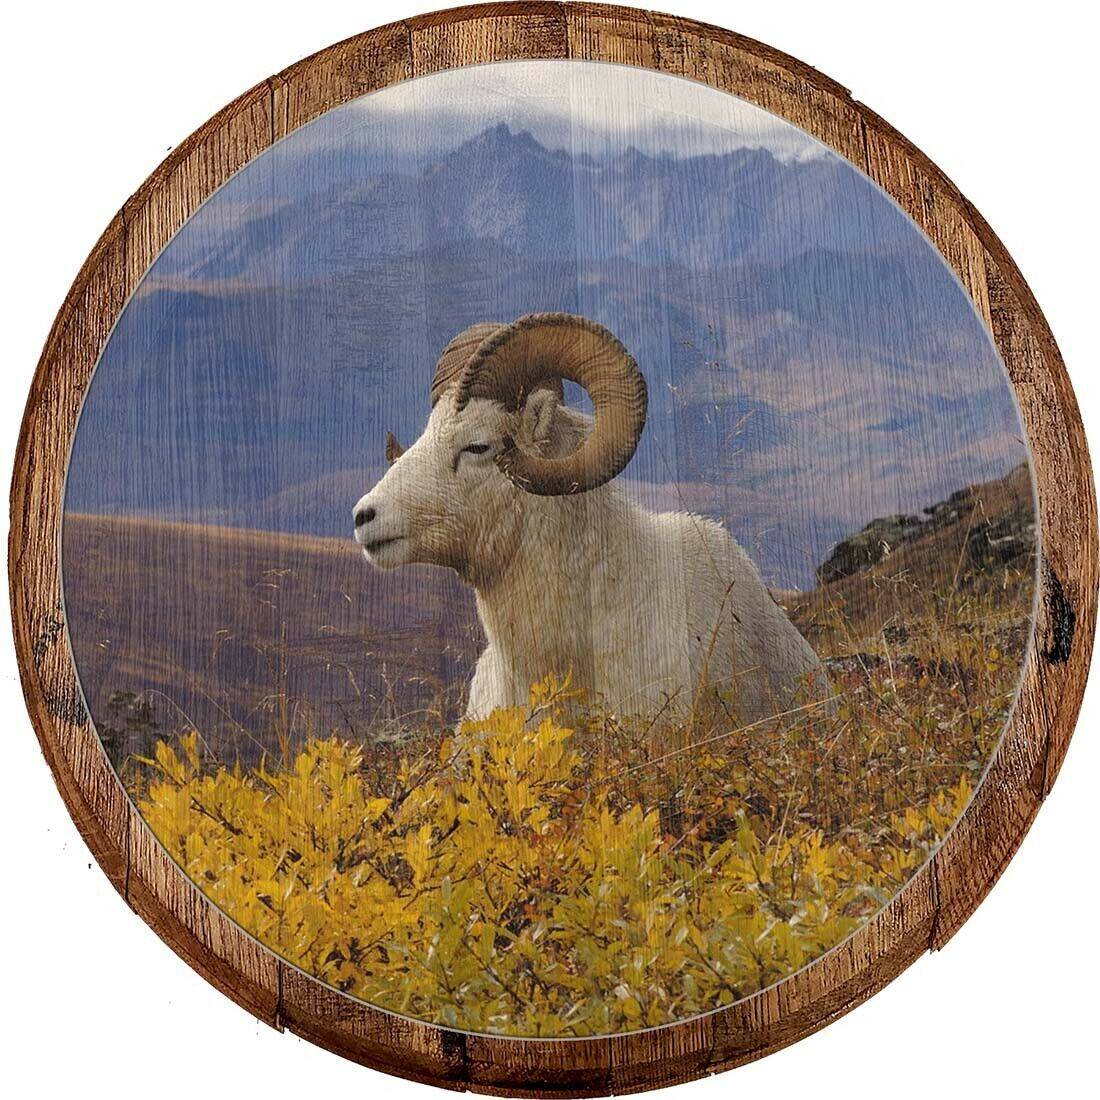 Whiskey Barrel Head Ram Horns in the Mountain Countryside Home Décor Wall Art